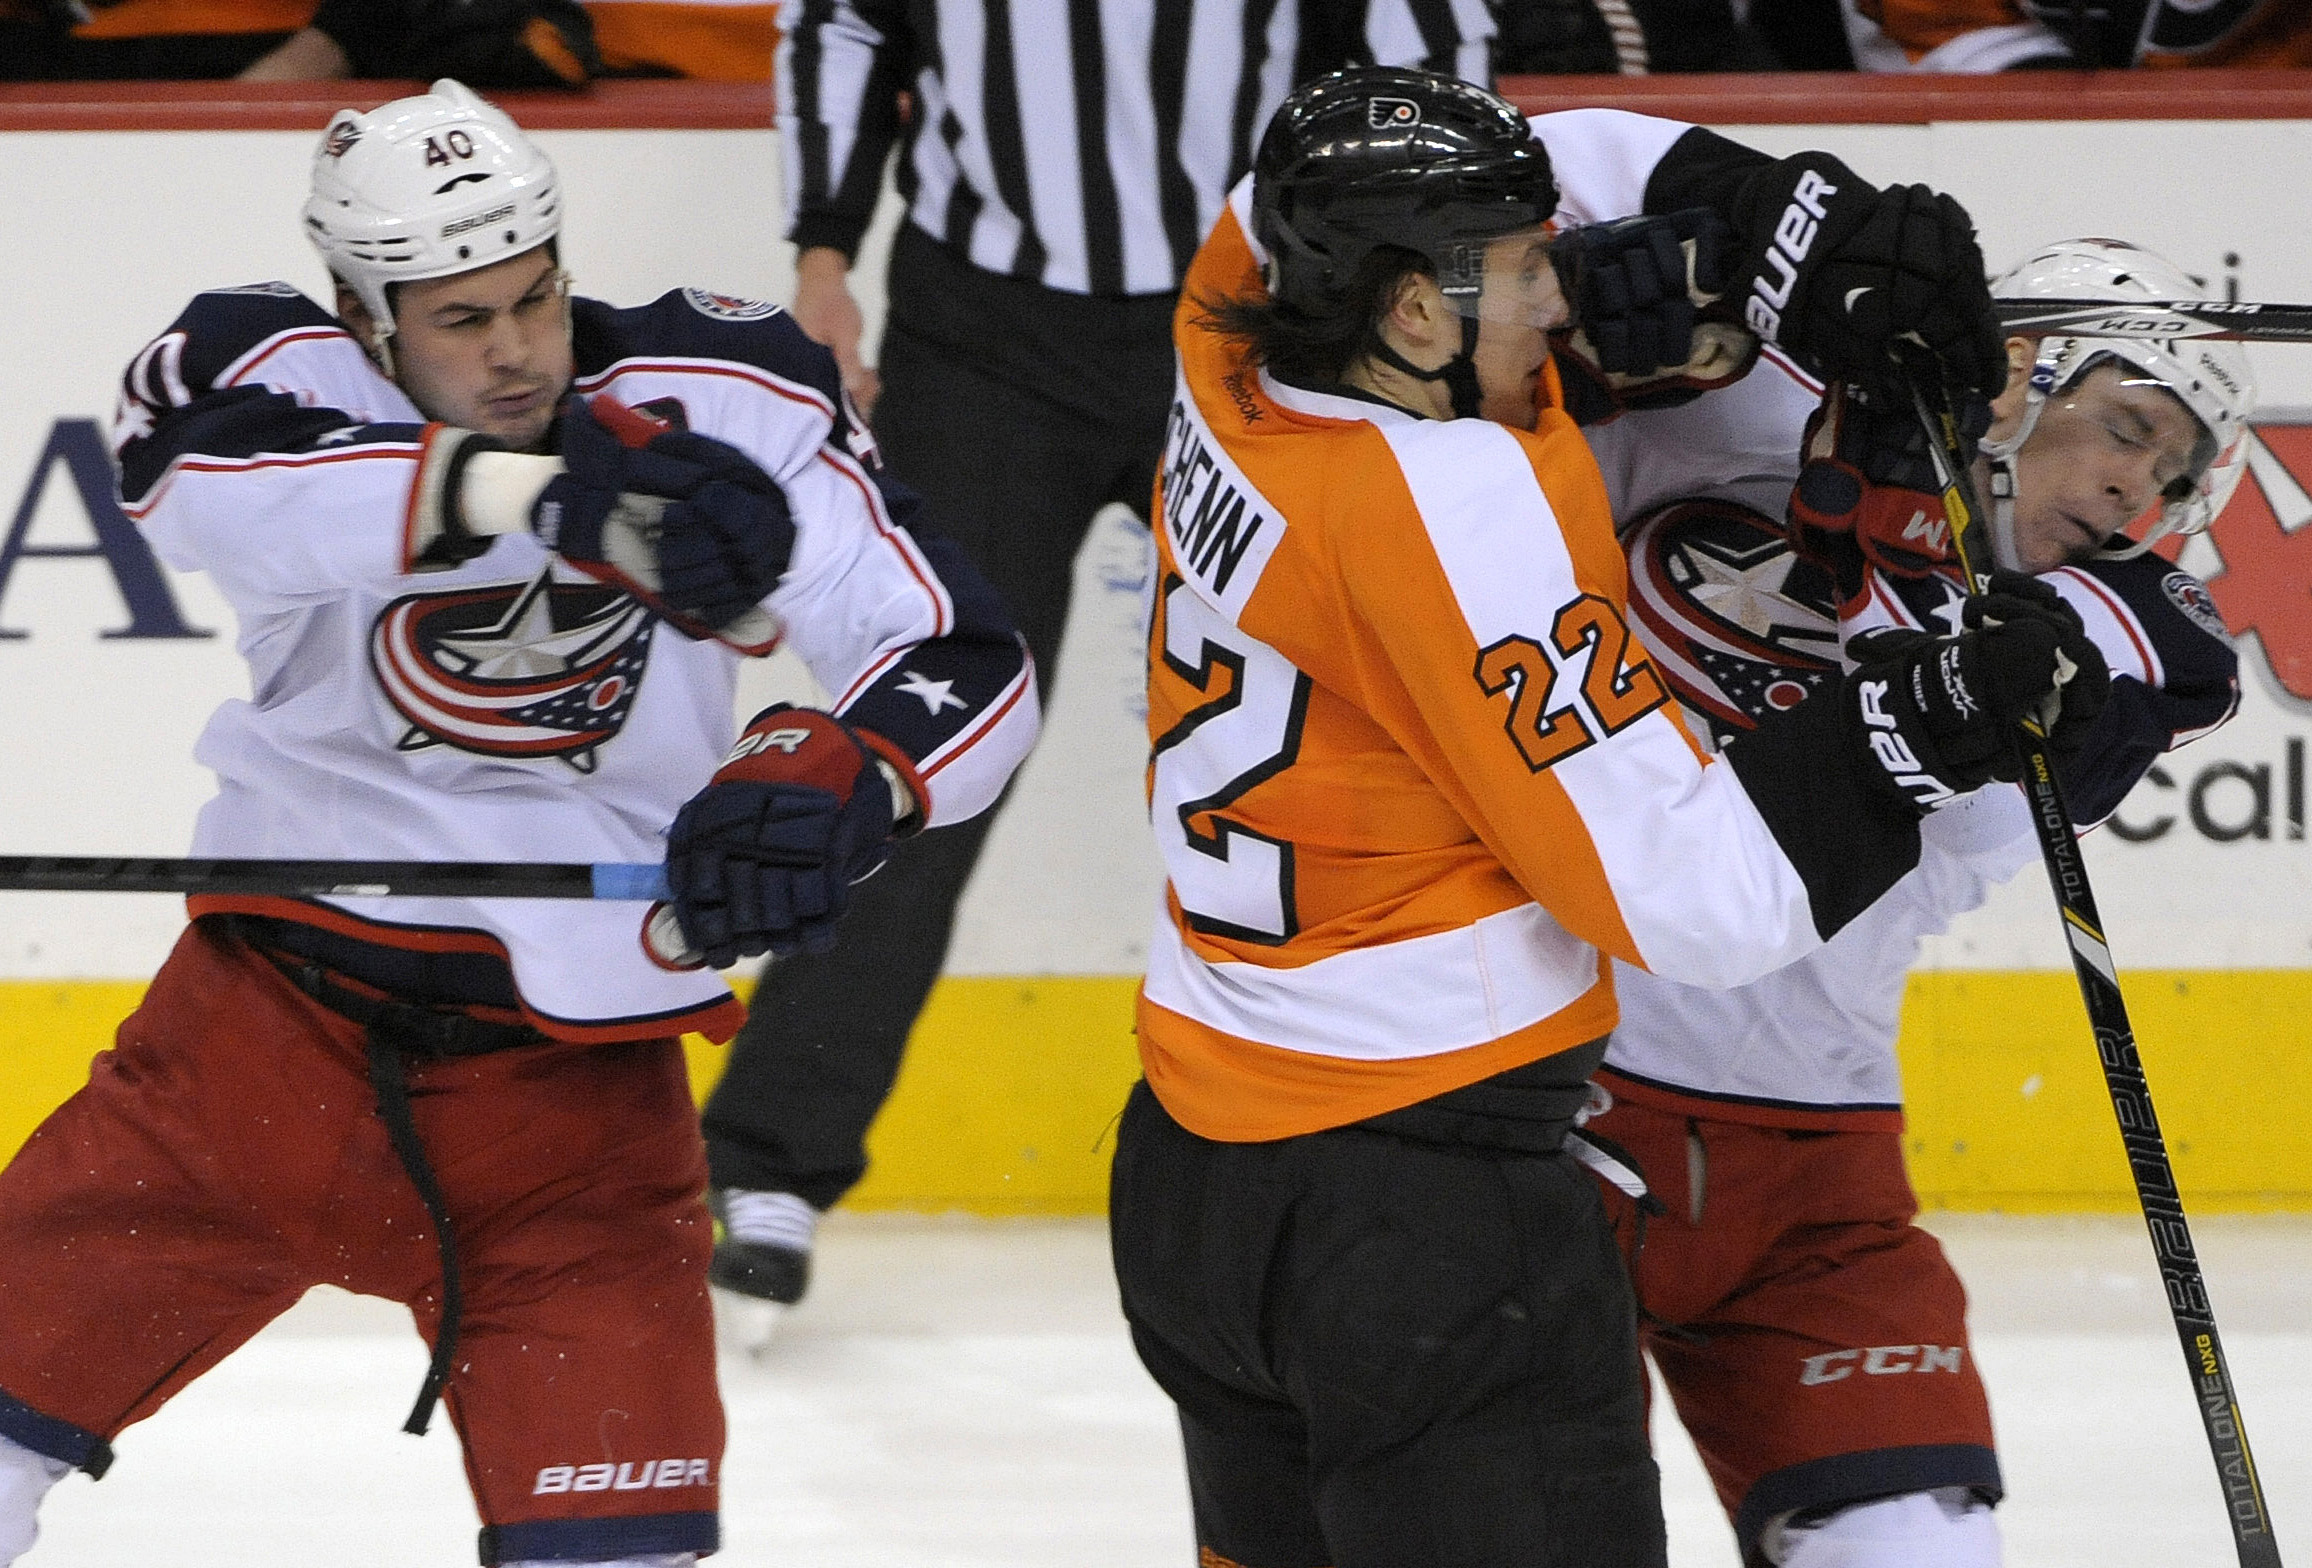 It's likely that Calvert and Boll are both going to have to fight to keep their spots on the 2015-2016 roster. Are they up for the challenge?